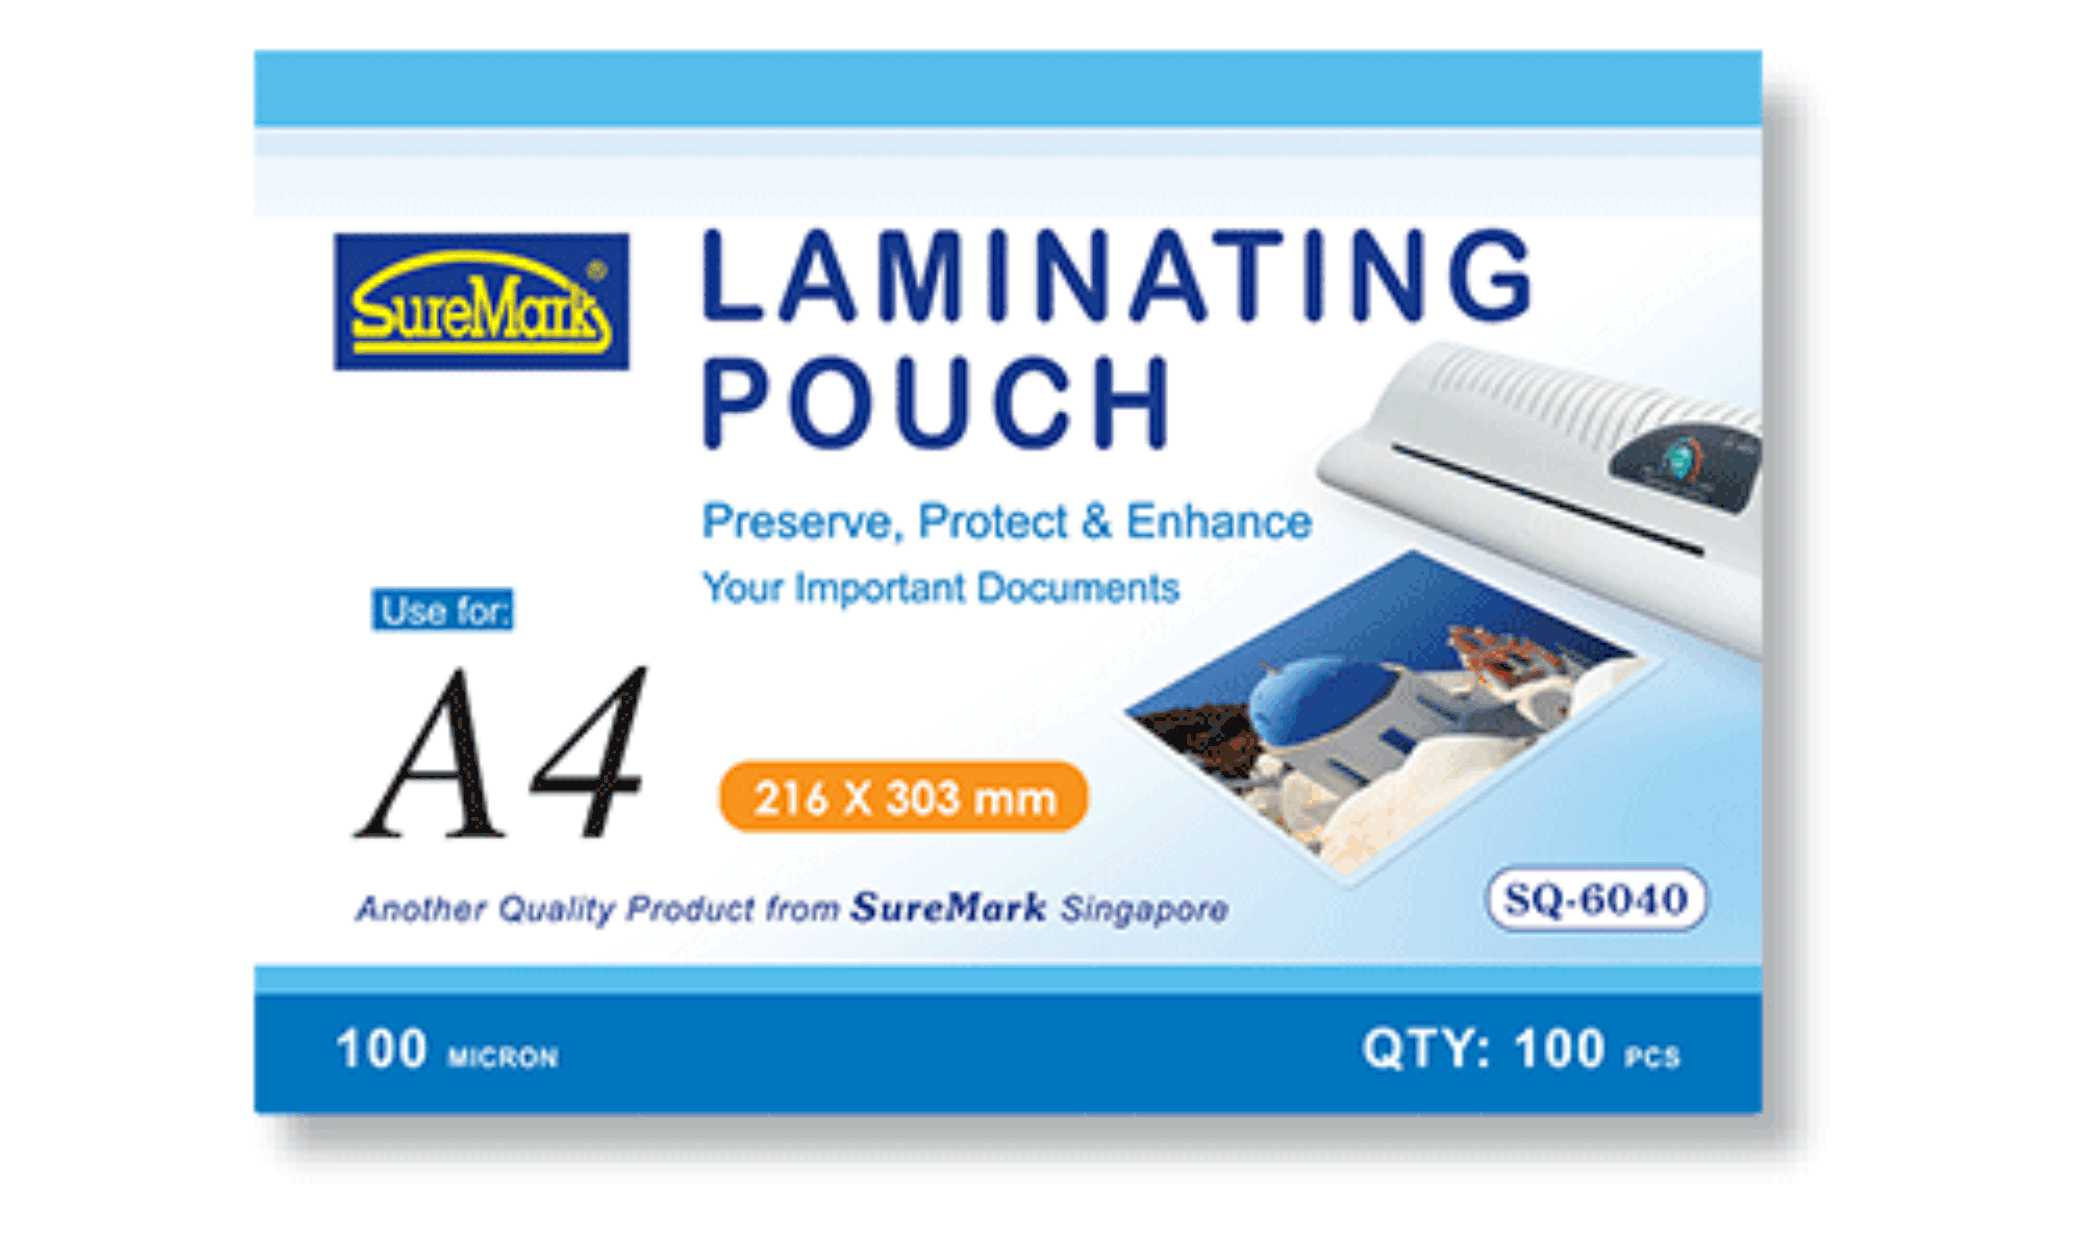 A4 Laminating Pouch